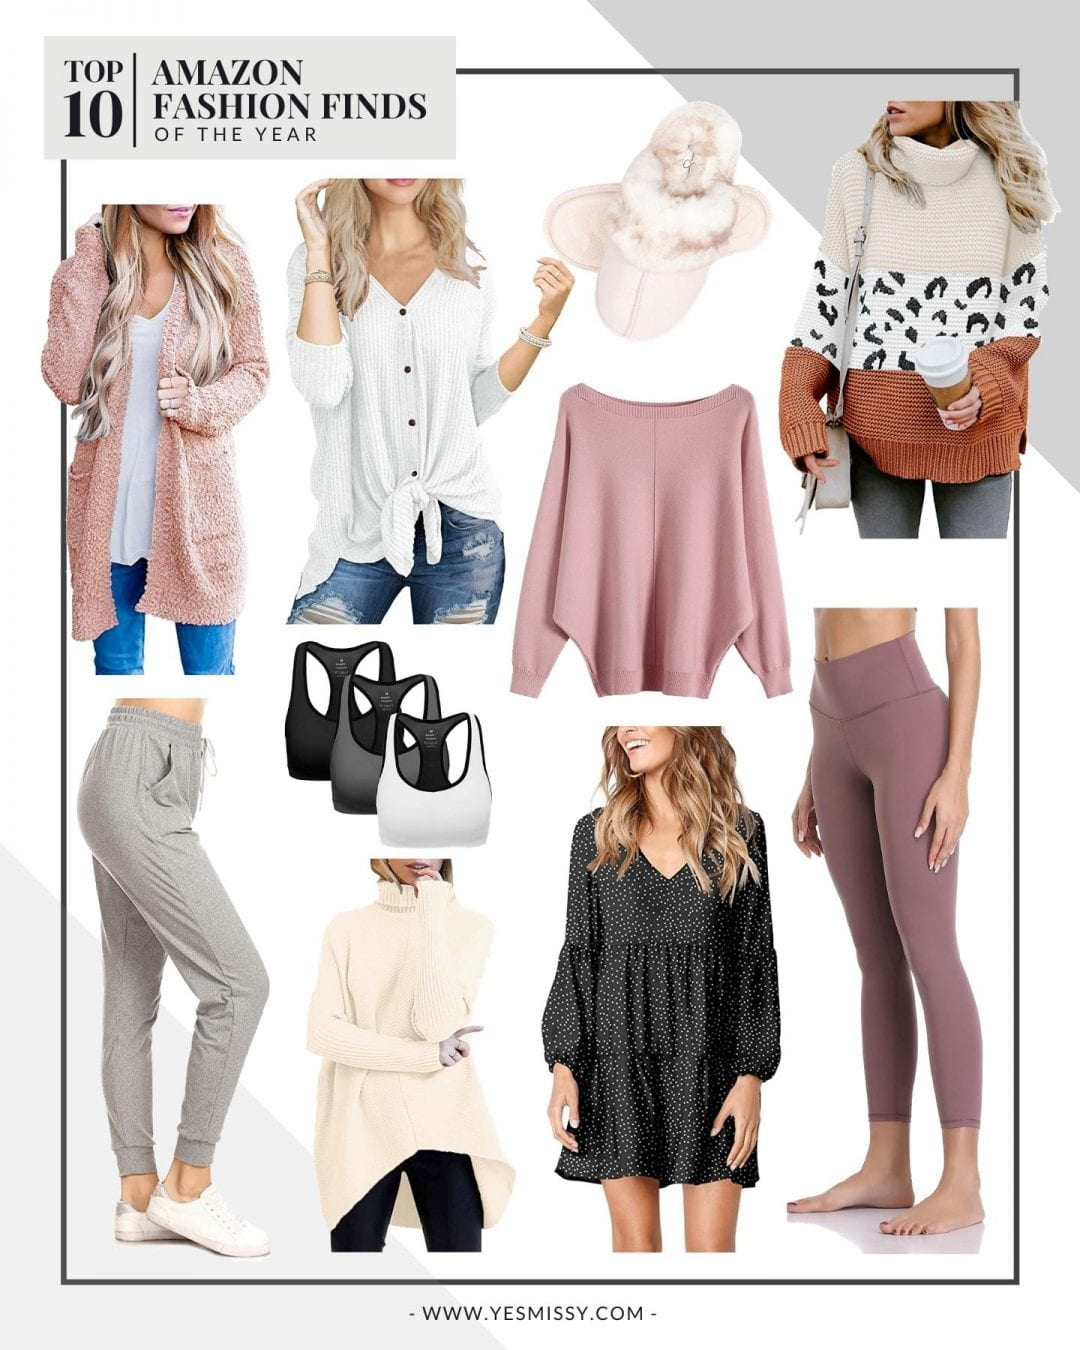 Top 7 Amazon Fashion Finds of the Year - YesMissy